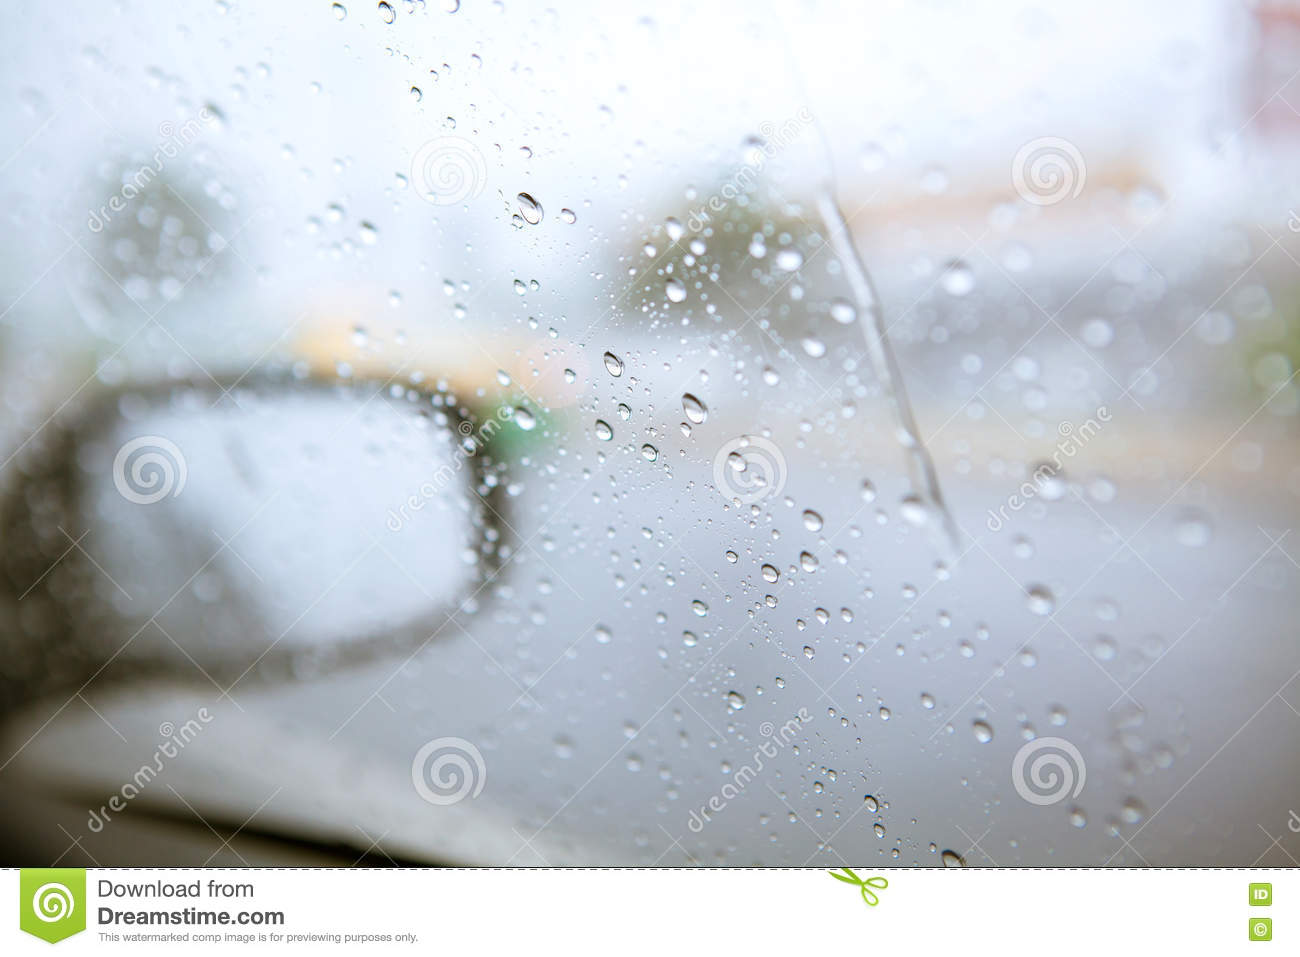 Blurry Drop Of Rain On Car Side Mirror On The Road With